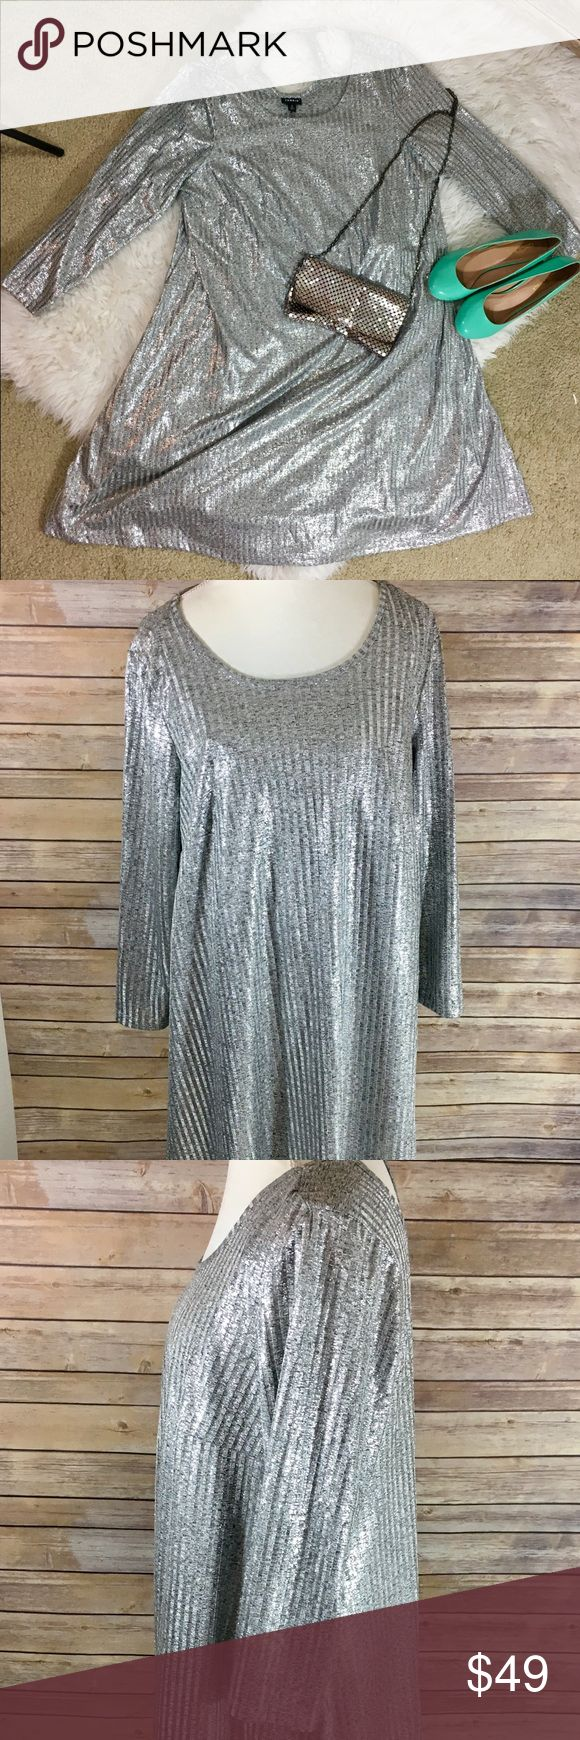 Torrid metallic plus size dress 2X NWT Torrid Plus Size 2 Silver Metallic ribbed dress. This dress also includes a slip underneath  Armpit to armpit length 22 in Dress length 28 in   All measurements are approximate  Smoke free home torrid Dresses Long Sleeve